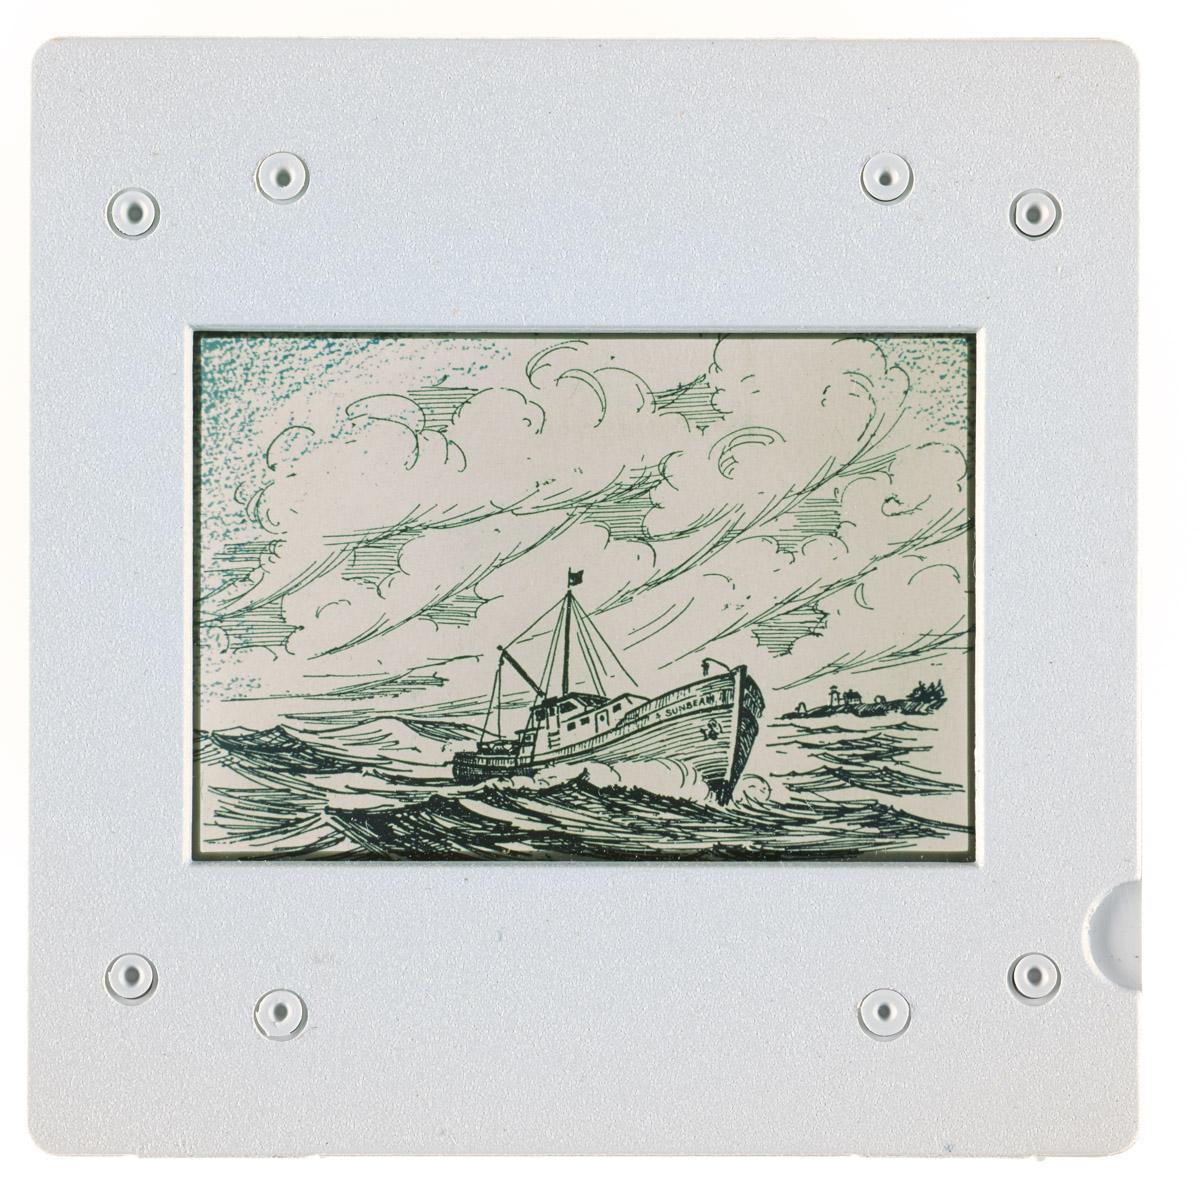 Drawing of the Sunbeam at Sea Slide 2, 1961-1982